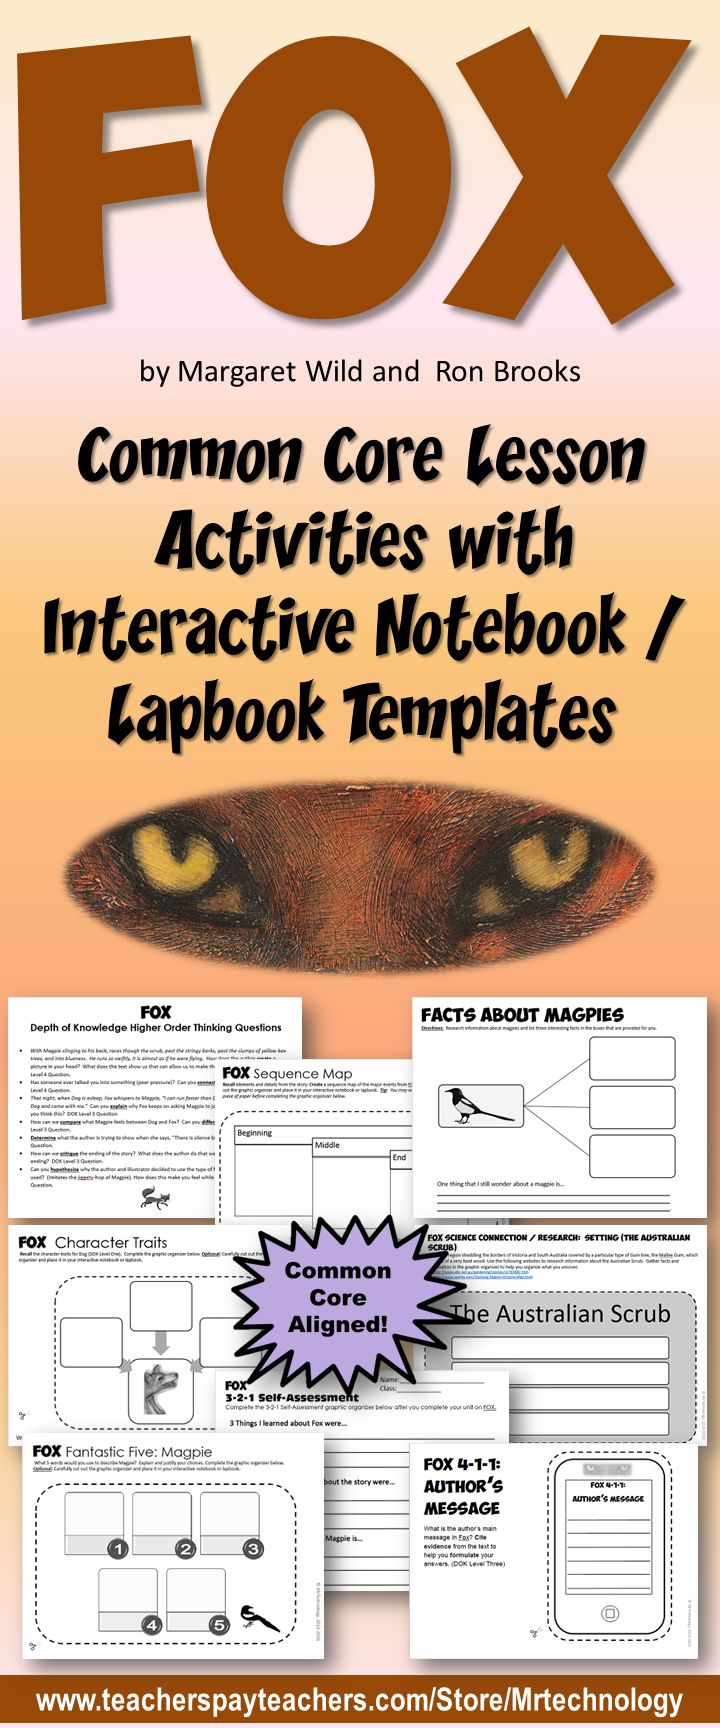 UPDATED FOX Lesson Activities with Interactive Notebook / Lapbook Templates (by Margaret Wild and Ron Brooks). Dog and Magpie take care of each other until Fox lures Magpie away to show her what it is like to be alone. Lots of new Common Core activities added!